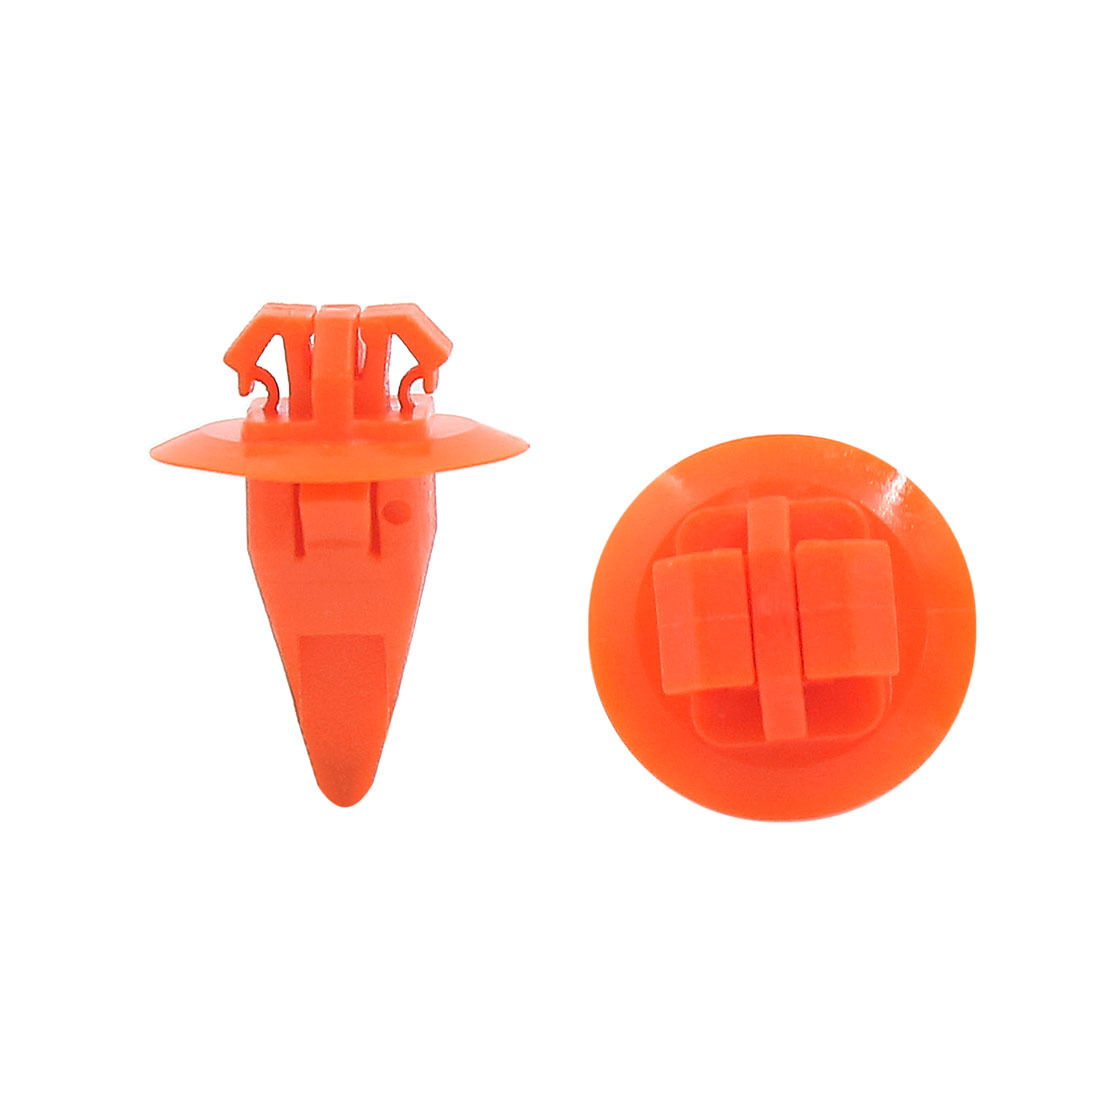 100 Pcs 10 x 8mm Hole Plastic Automobile Car Fastener Rivets Fender Clips Orange